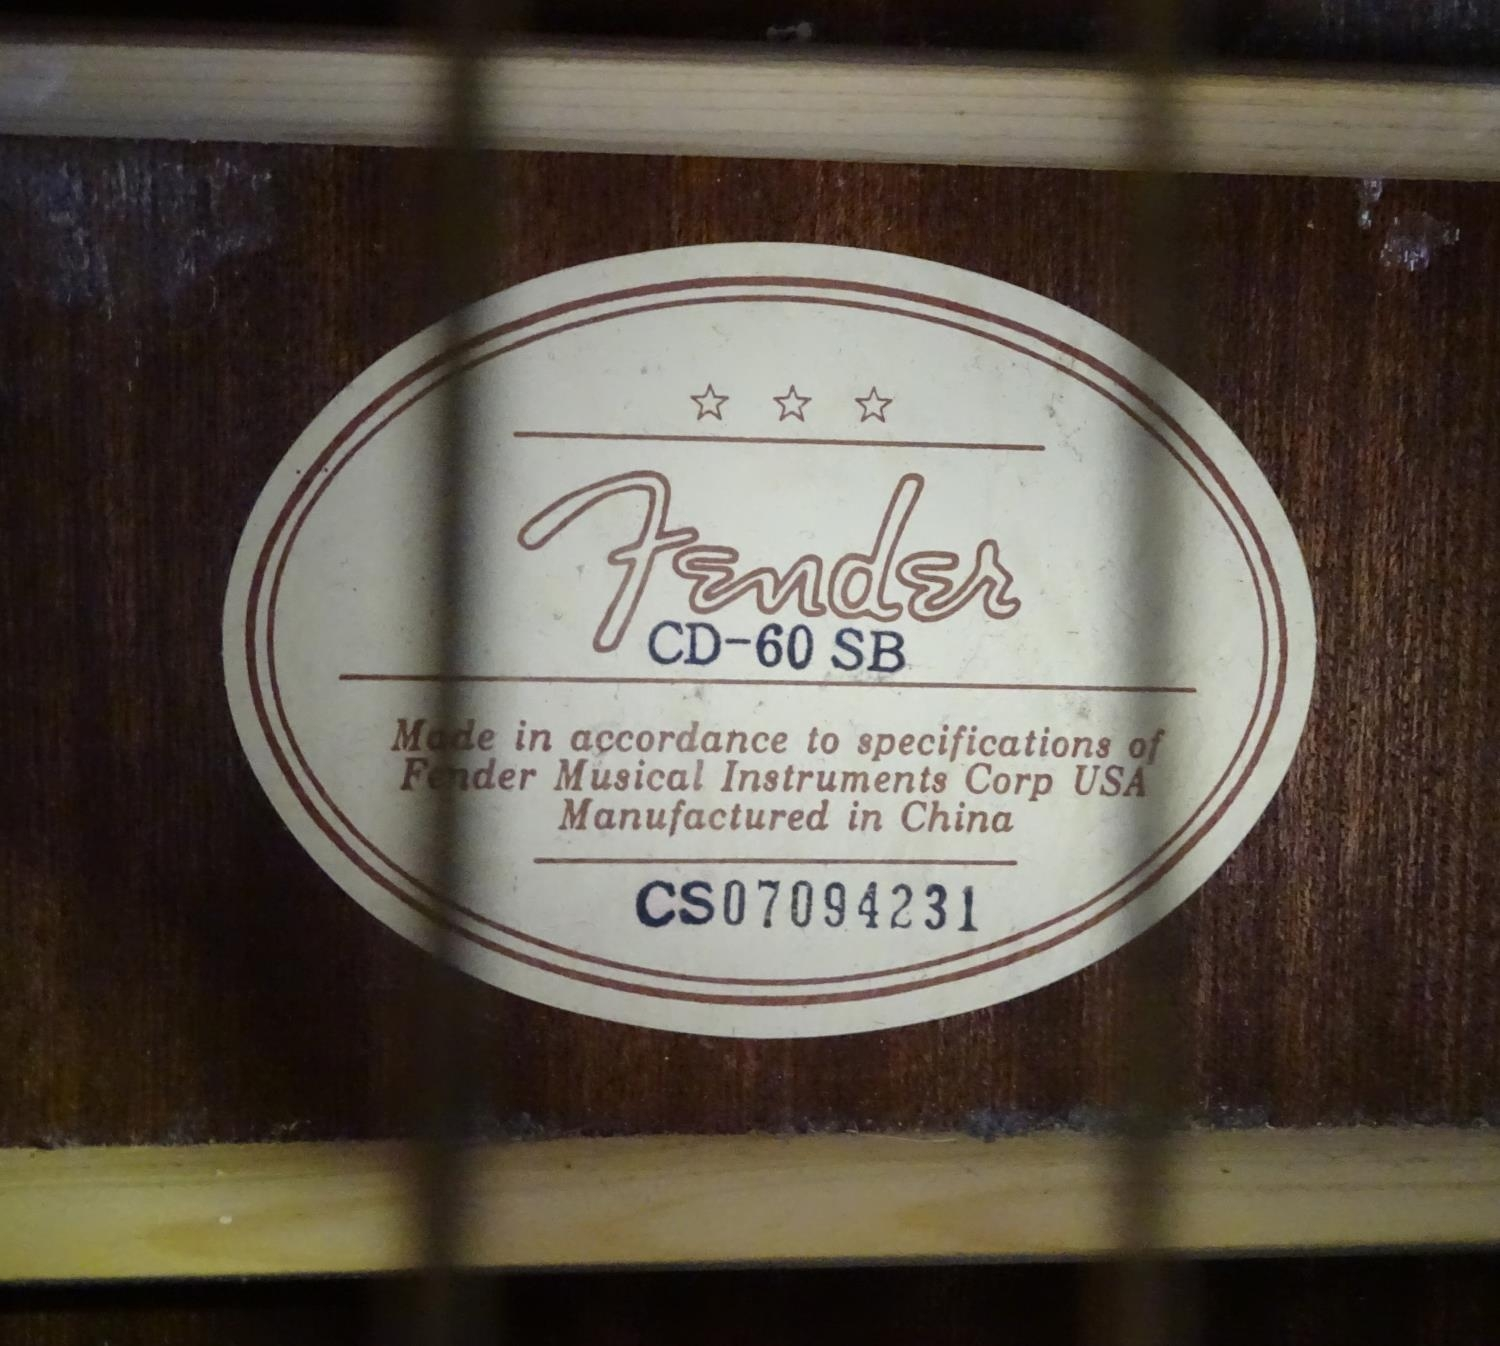 A Fender CD-60 SB acoustic guitar Please Note - we do not make reference to the condition of lots - Image 4 of 5